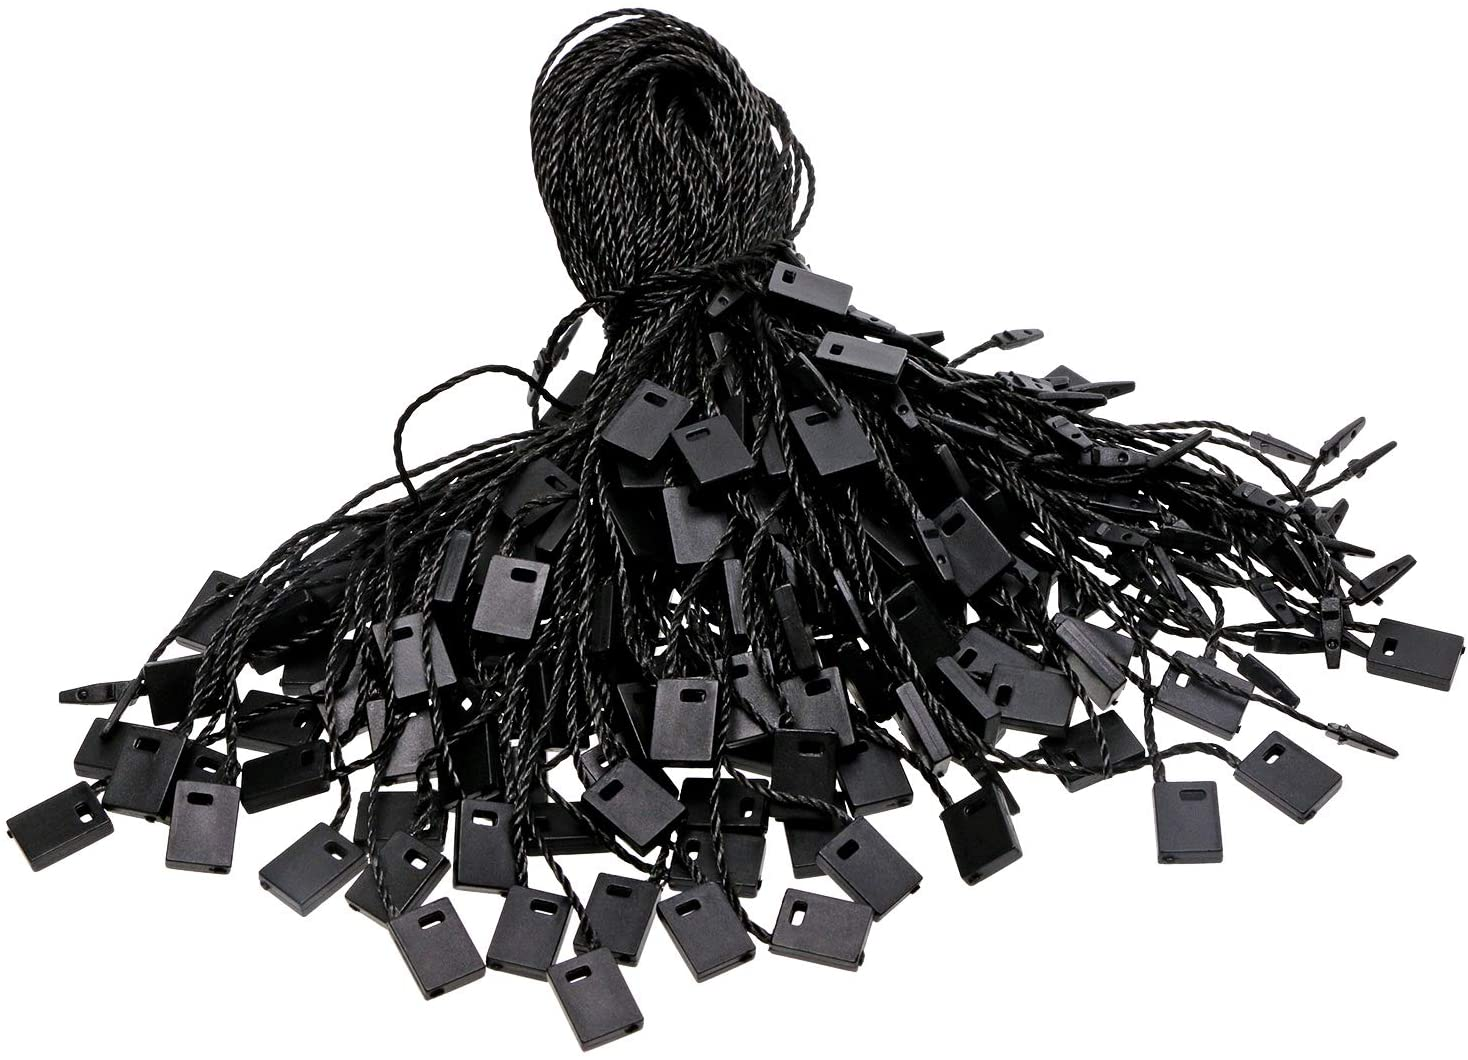 Tupalizy 7 Inch Nylon Hang Tag String for Clothes Gift Bags Price Tags Shoes Snap Lock Pin Loop Fastener Hook Ties Tag Rope for Belts Pocket Squares Luggage Label Attachment, 120PCS (Black)